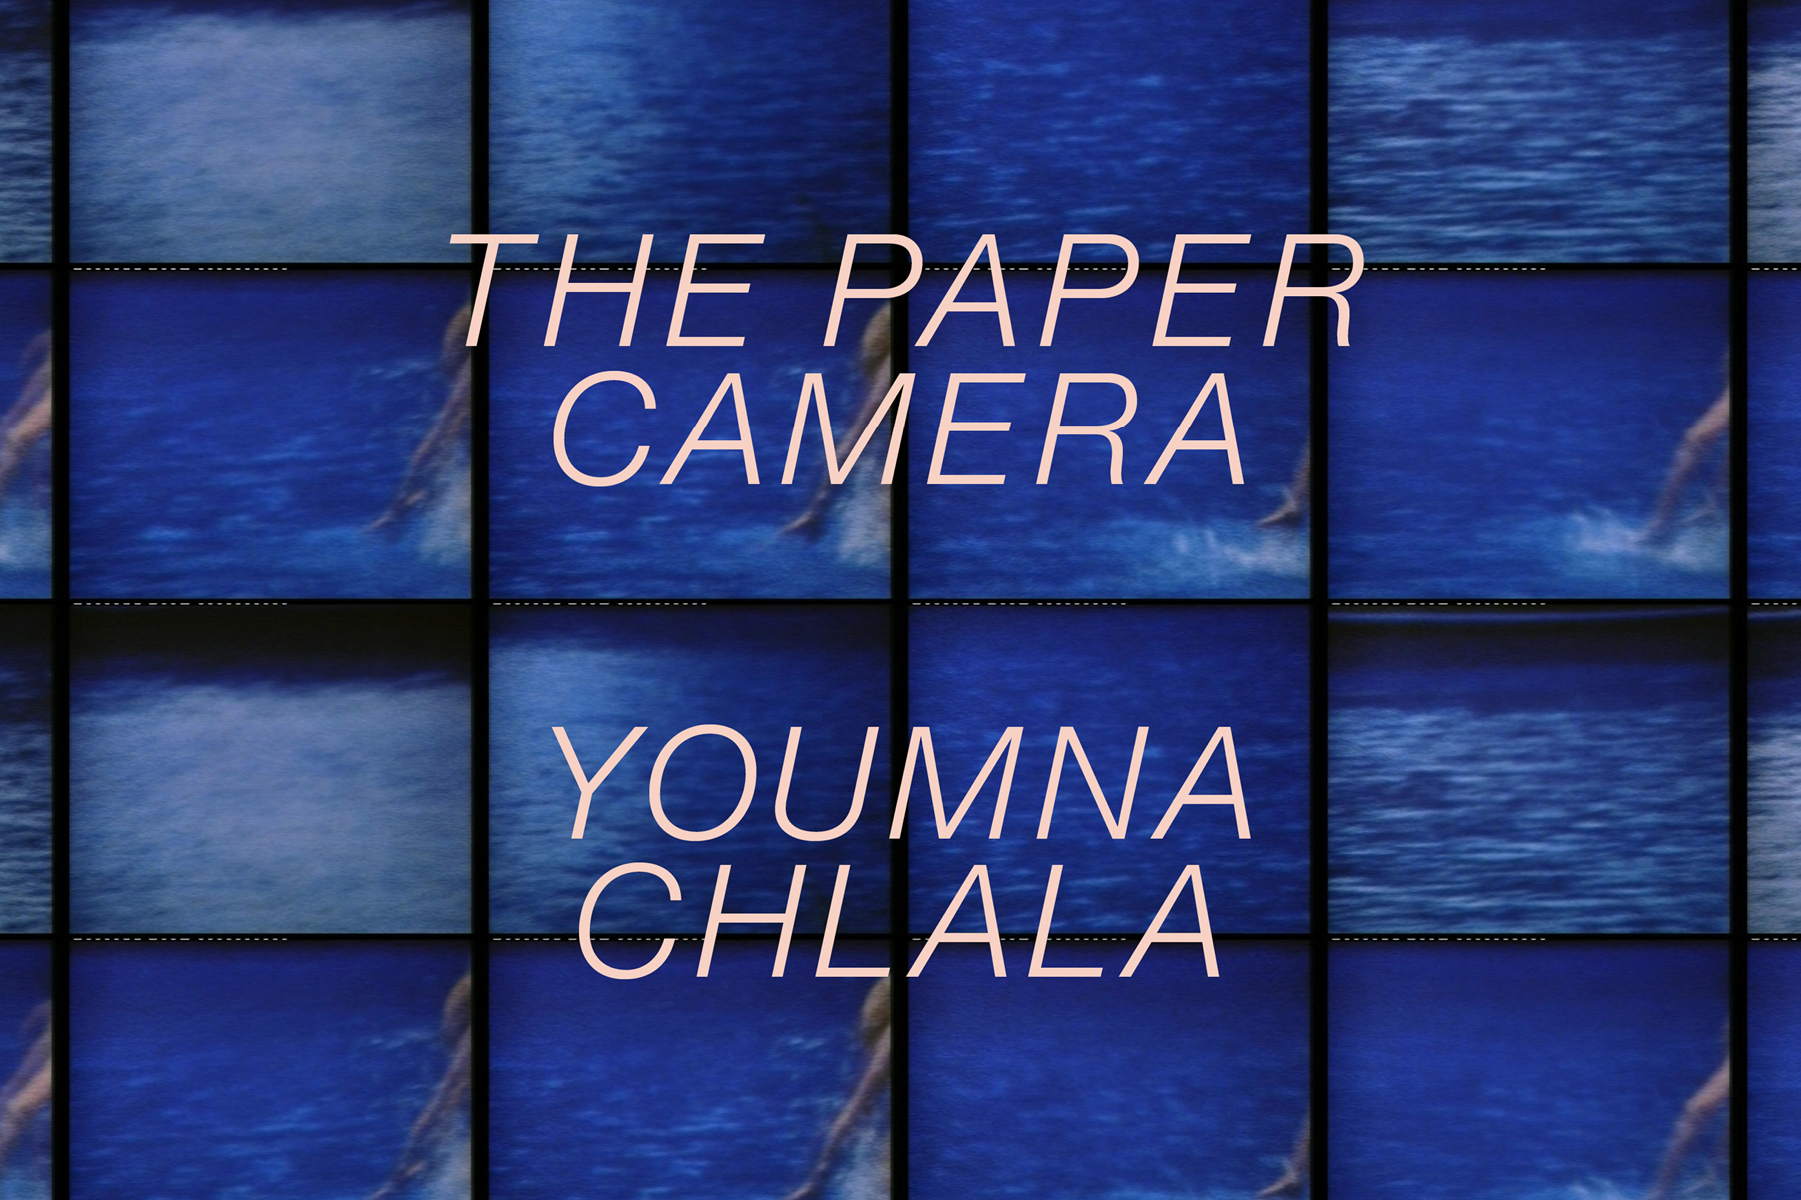 Book Launch: The Paper Camera by Youmna Chlala with readings by Celina Su, Marwa Halal, Mendi Obadike, Mirene Arsanios and Aracelis Girmay